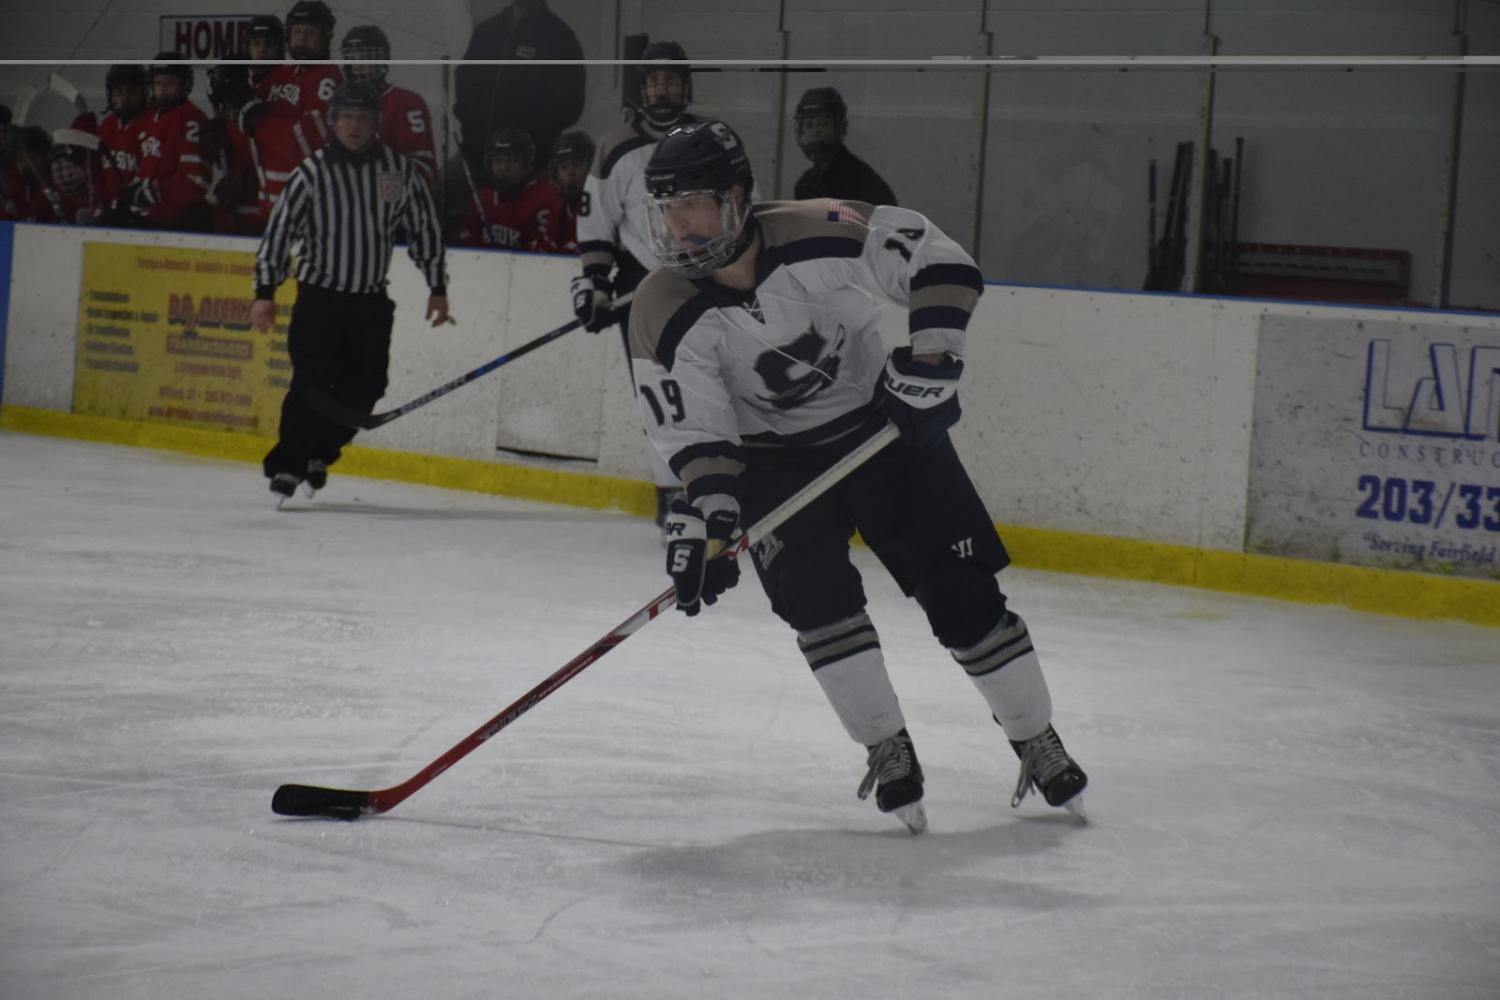 Wreckers Roll Over Cadets in Surprising Boys' Hockey Blowout